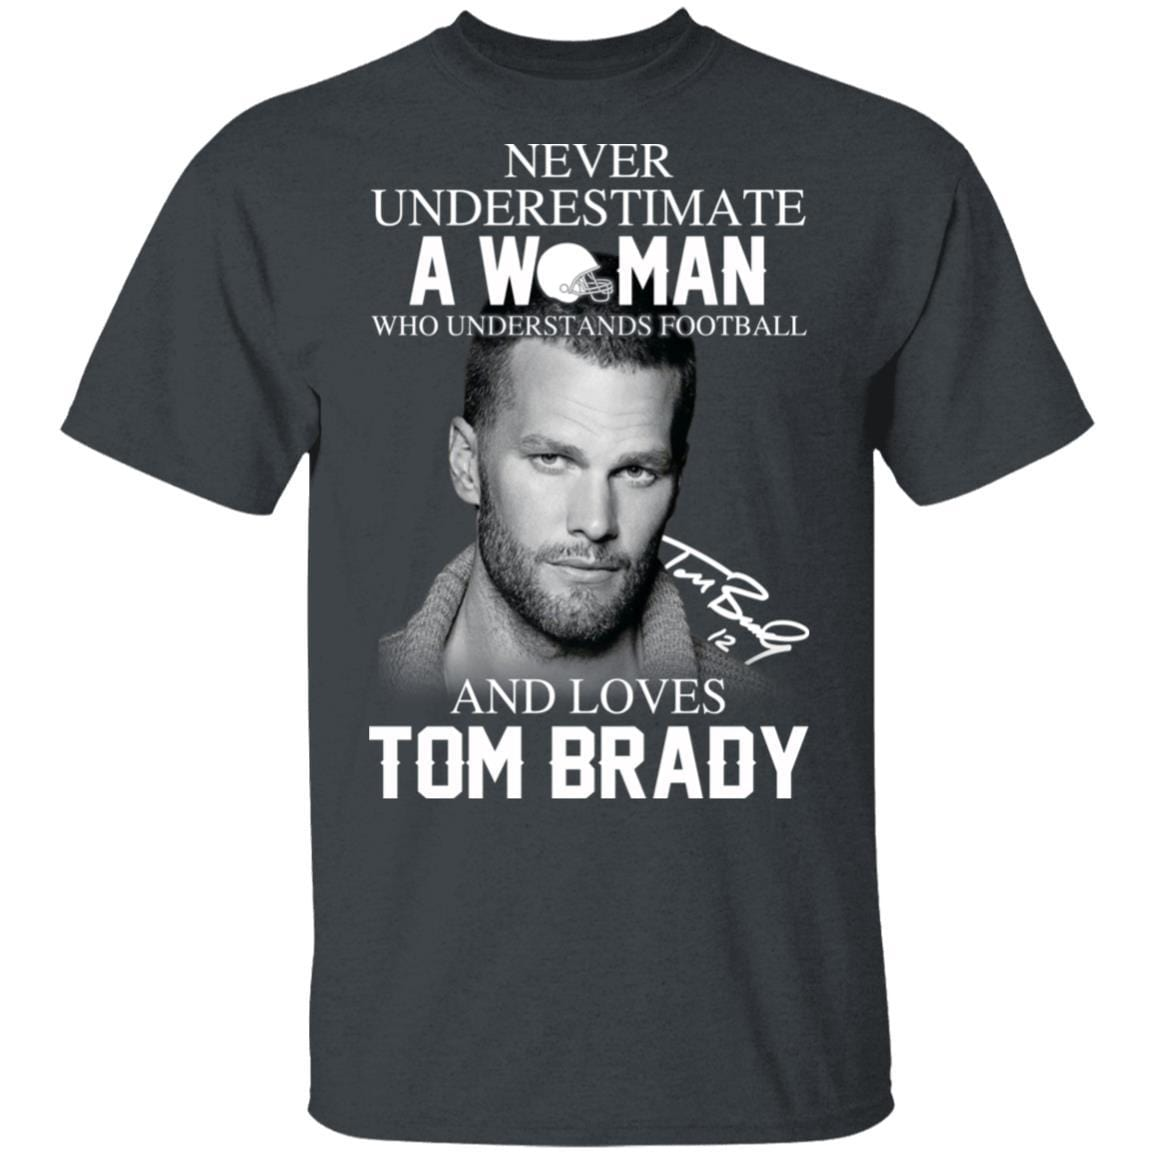 Never Underestimate A Woman Who Understands Football And Loves Tom Brady T-Shirts, Hoodies 1049-9957-86894527-48192 - Tee Ript